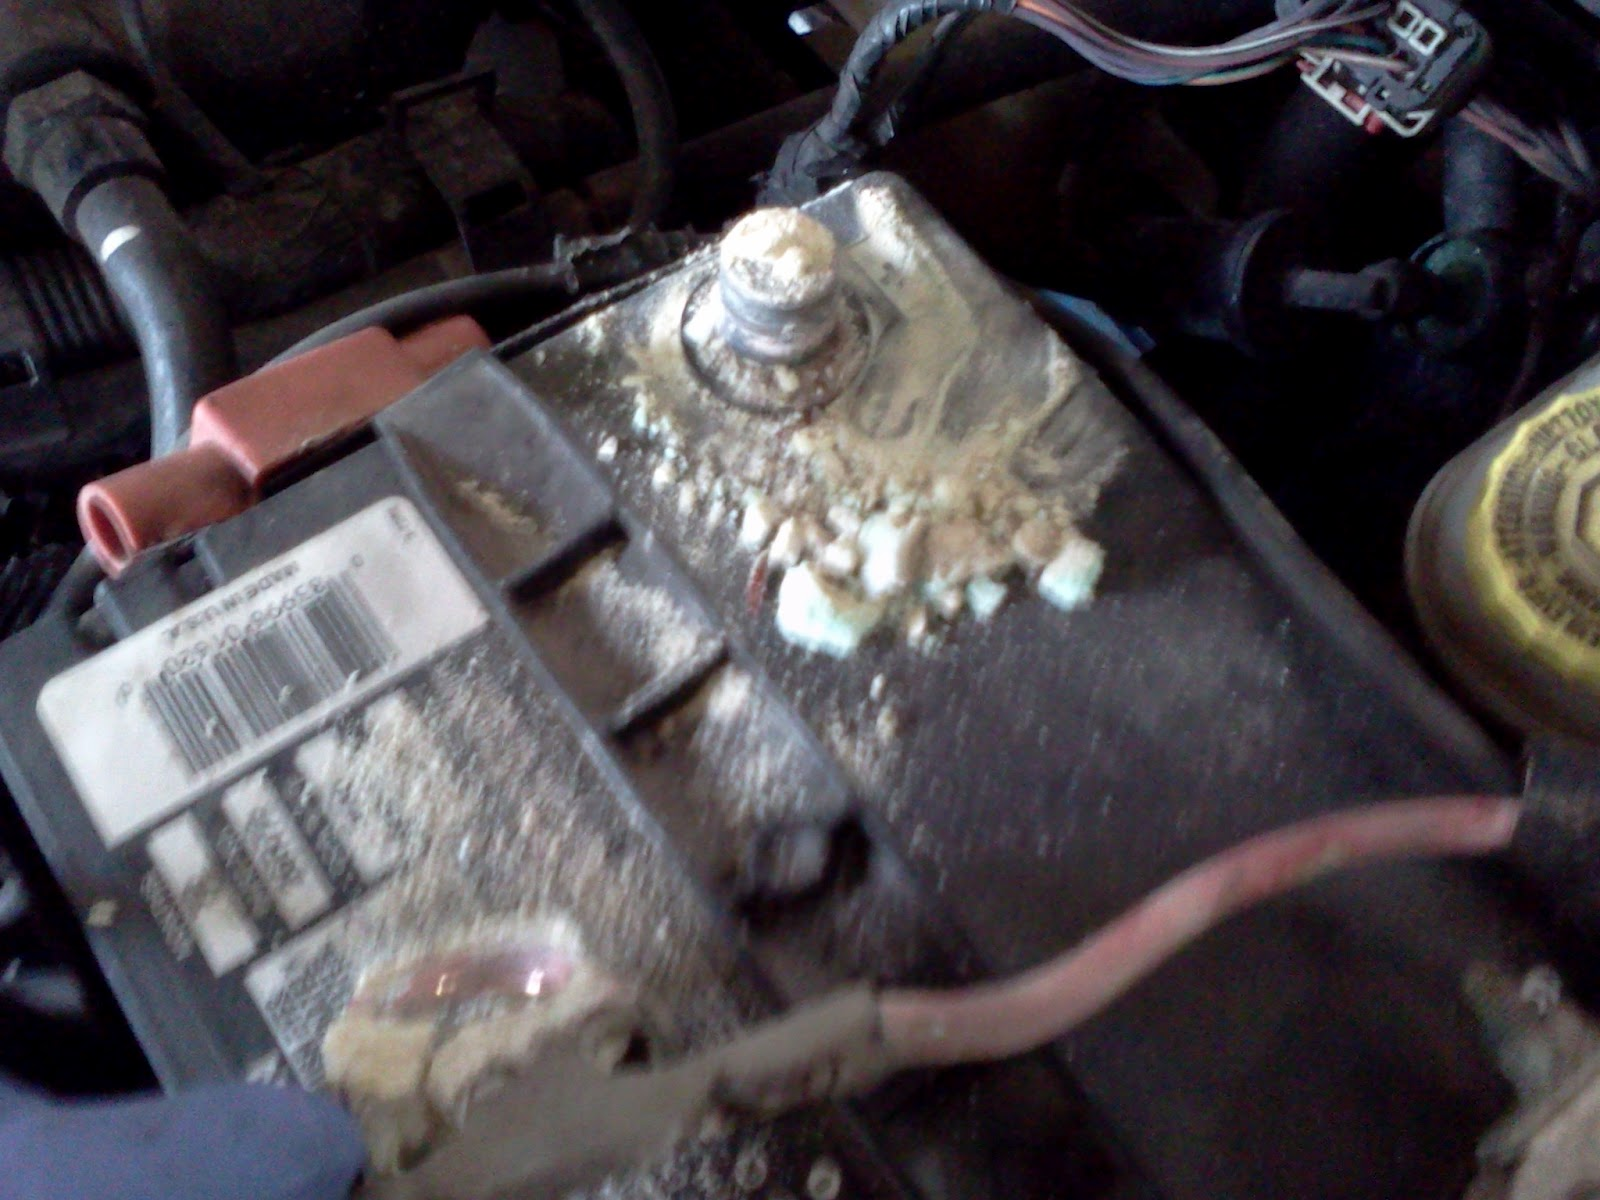 Timthetech 2004 Dodge Neon Sxt 20 Intermittent Stall Ford F150 Battery Terminal Next It Was Time To Clean The I Connected A Saver Dcl Under Dash Then Disconnected Positive Cable And Started